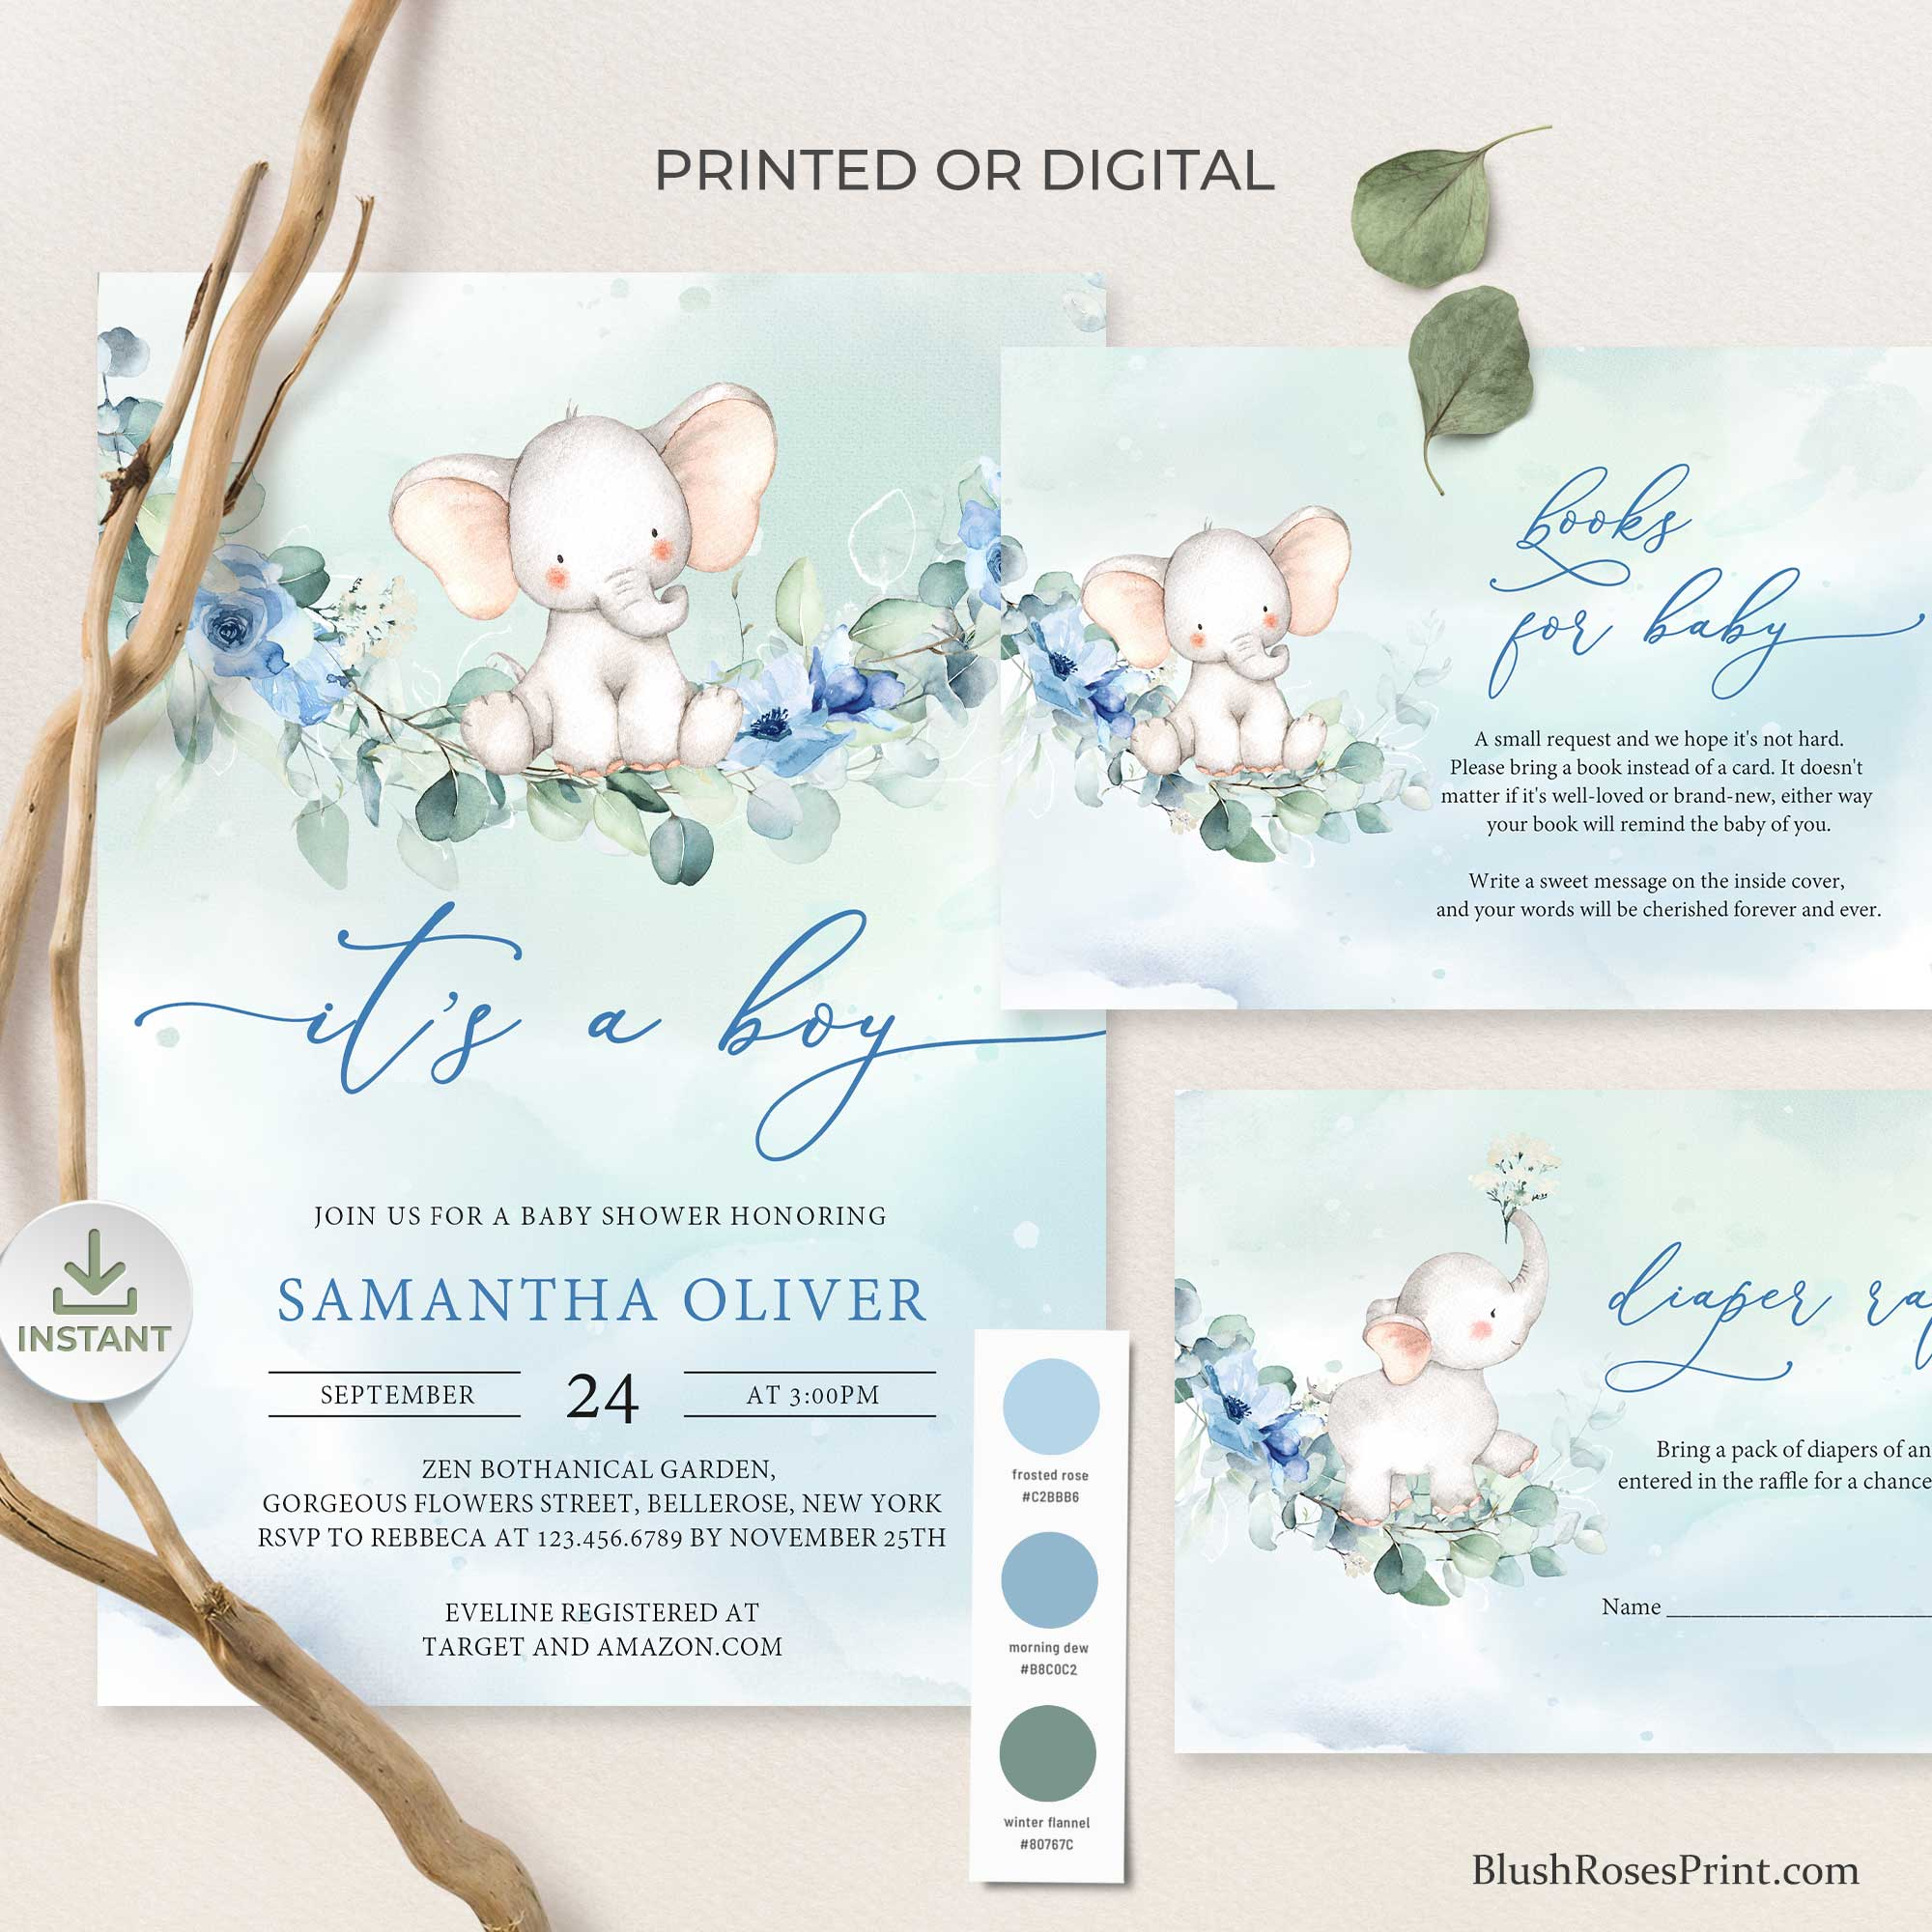 JOYS - It's A Boy Baby Shower Invite, Editable Template for Baby Shower Invitation Set, Dusty Blue Floral Baby Shower